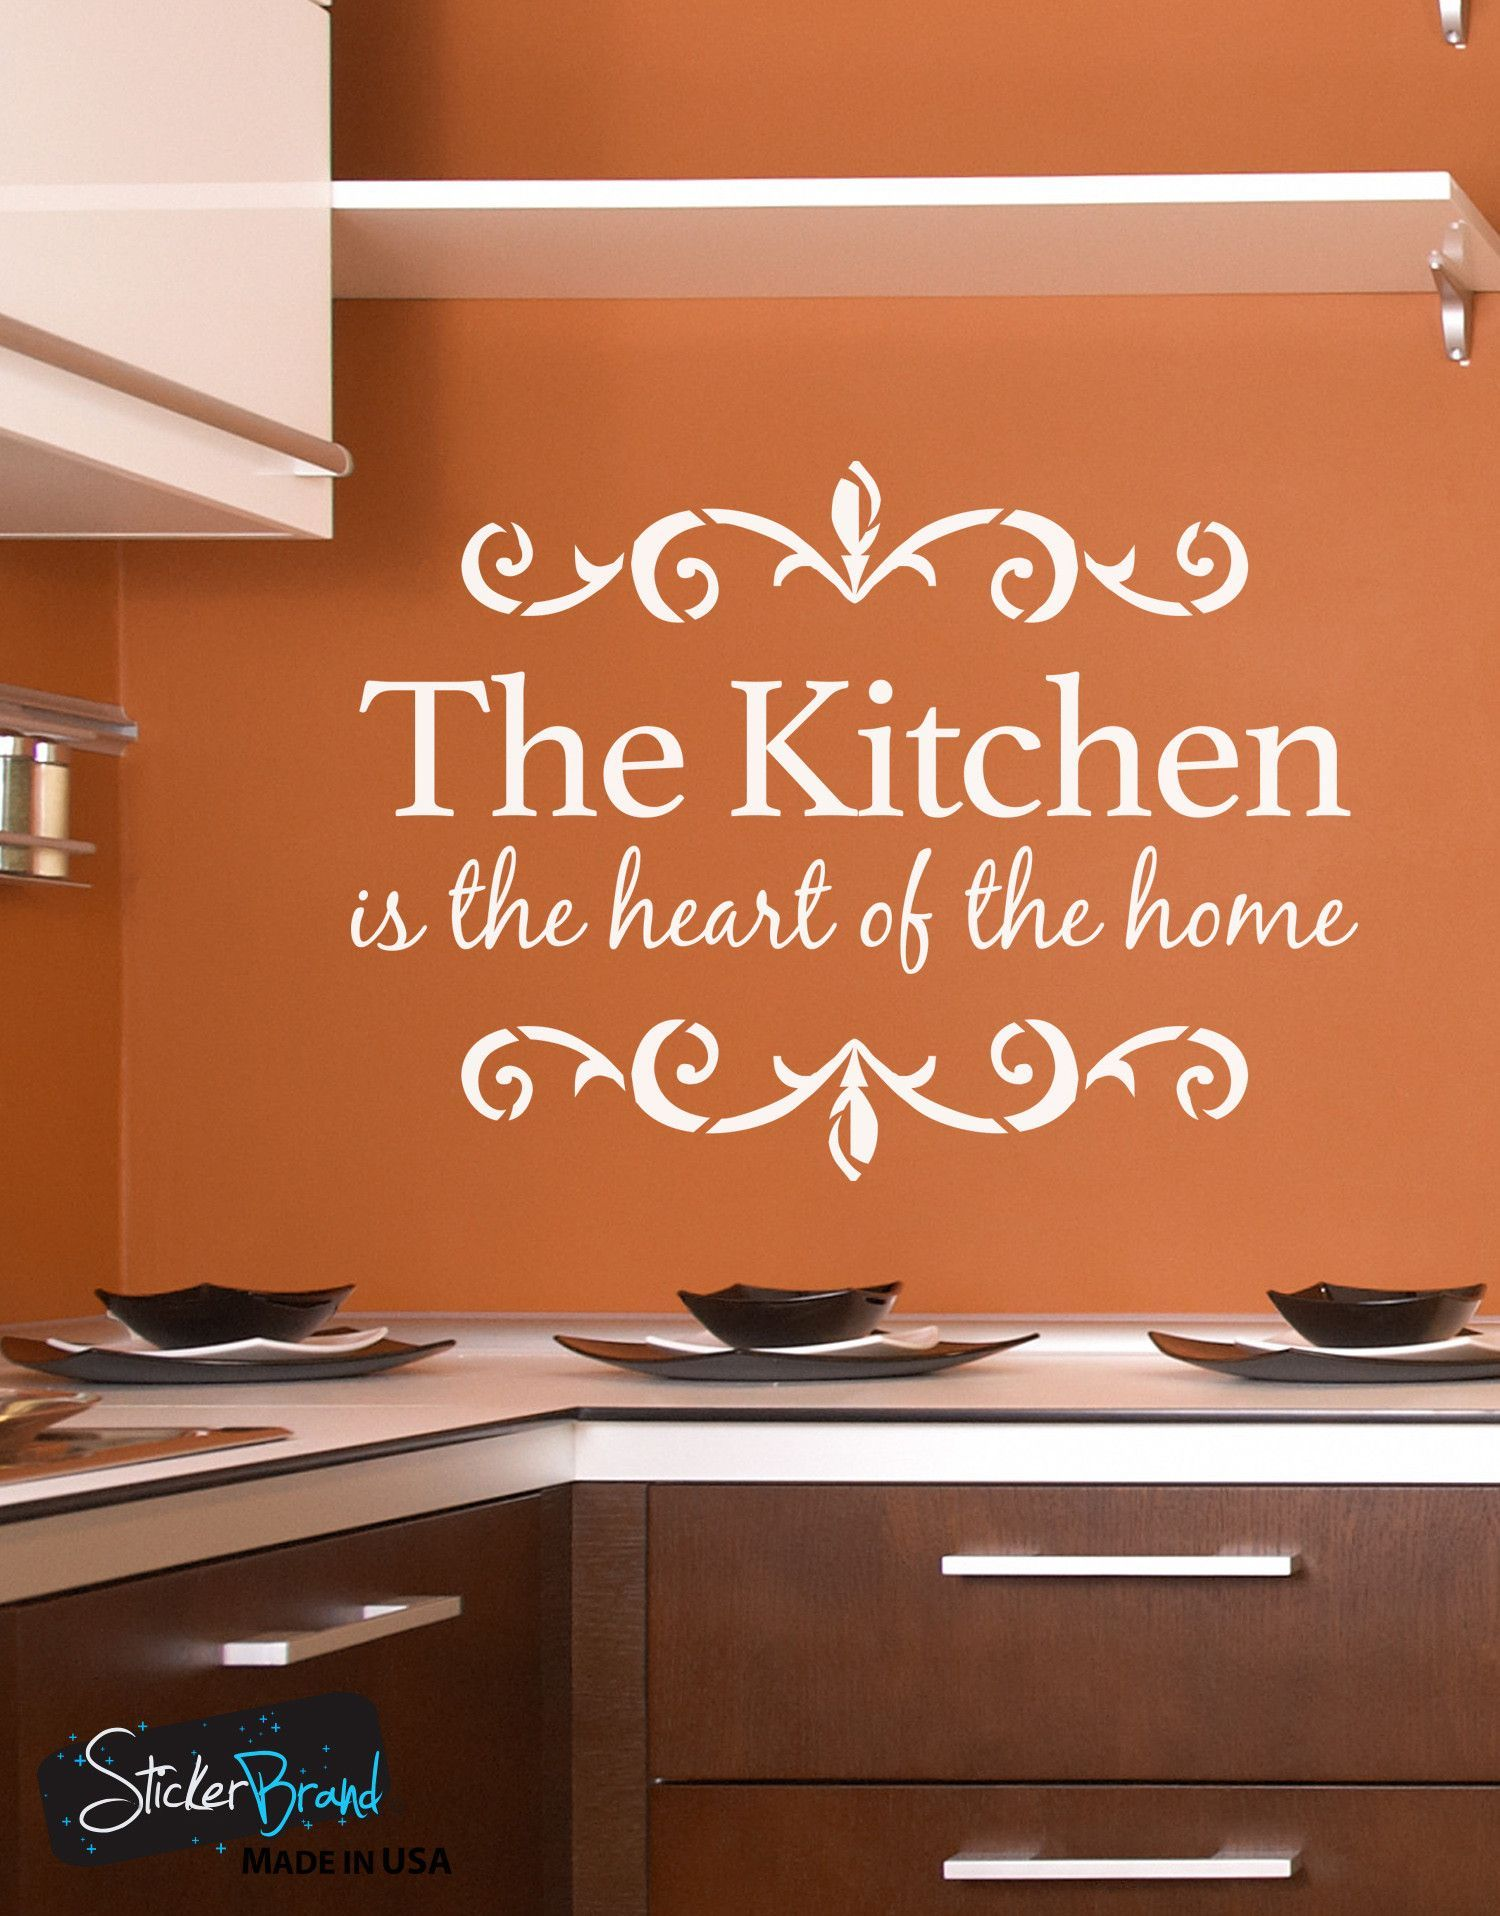 the kitchen is the heart of the home quote vinyl wall decal 6079 vinyl wall decals wall on kitchen decor quotes wall decals id=64710